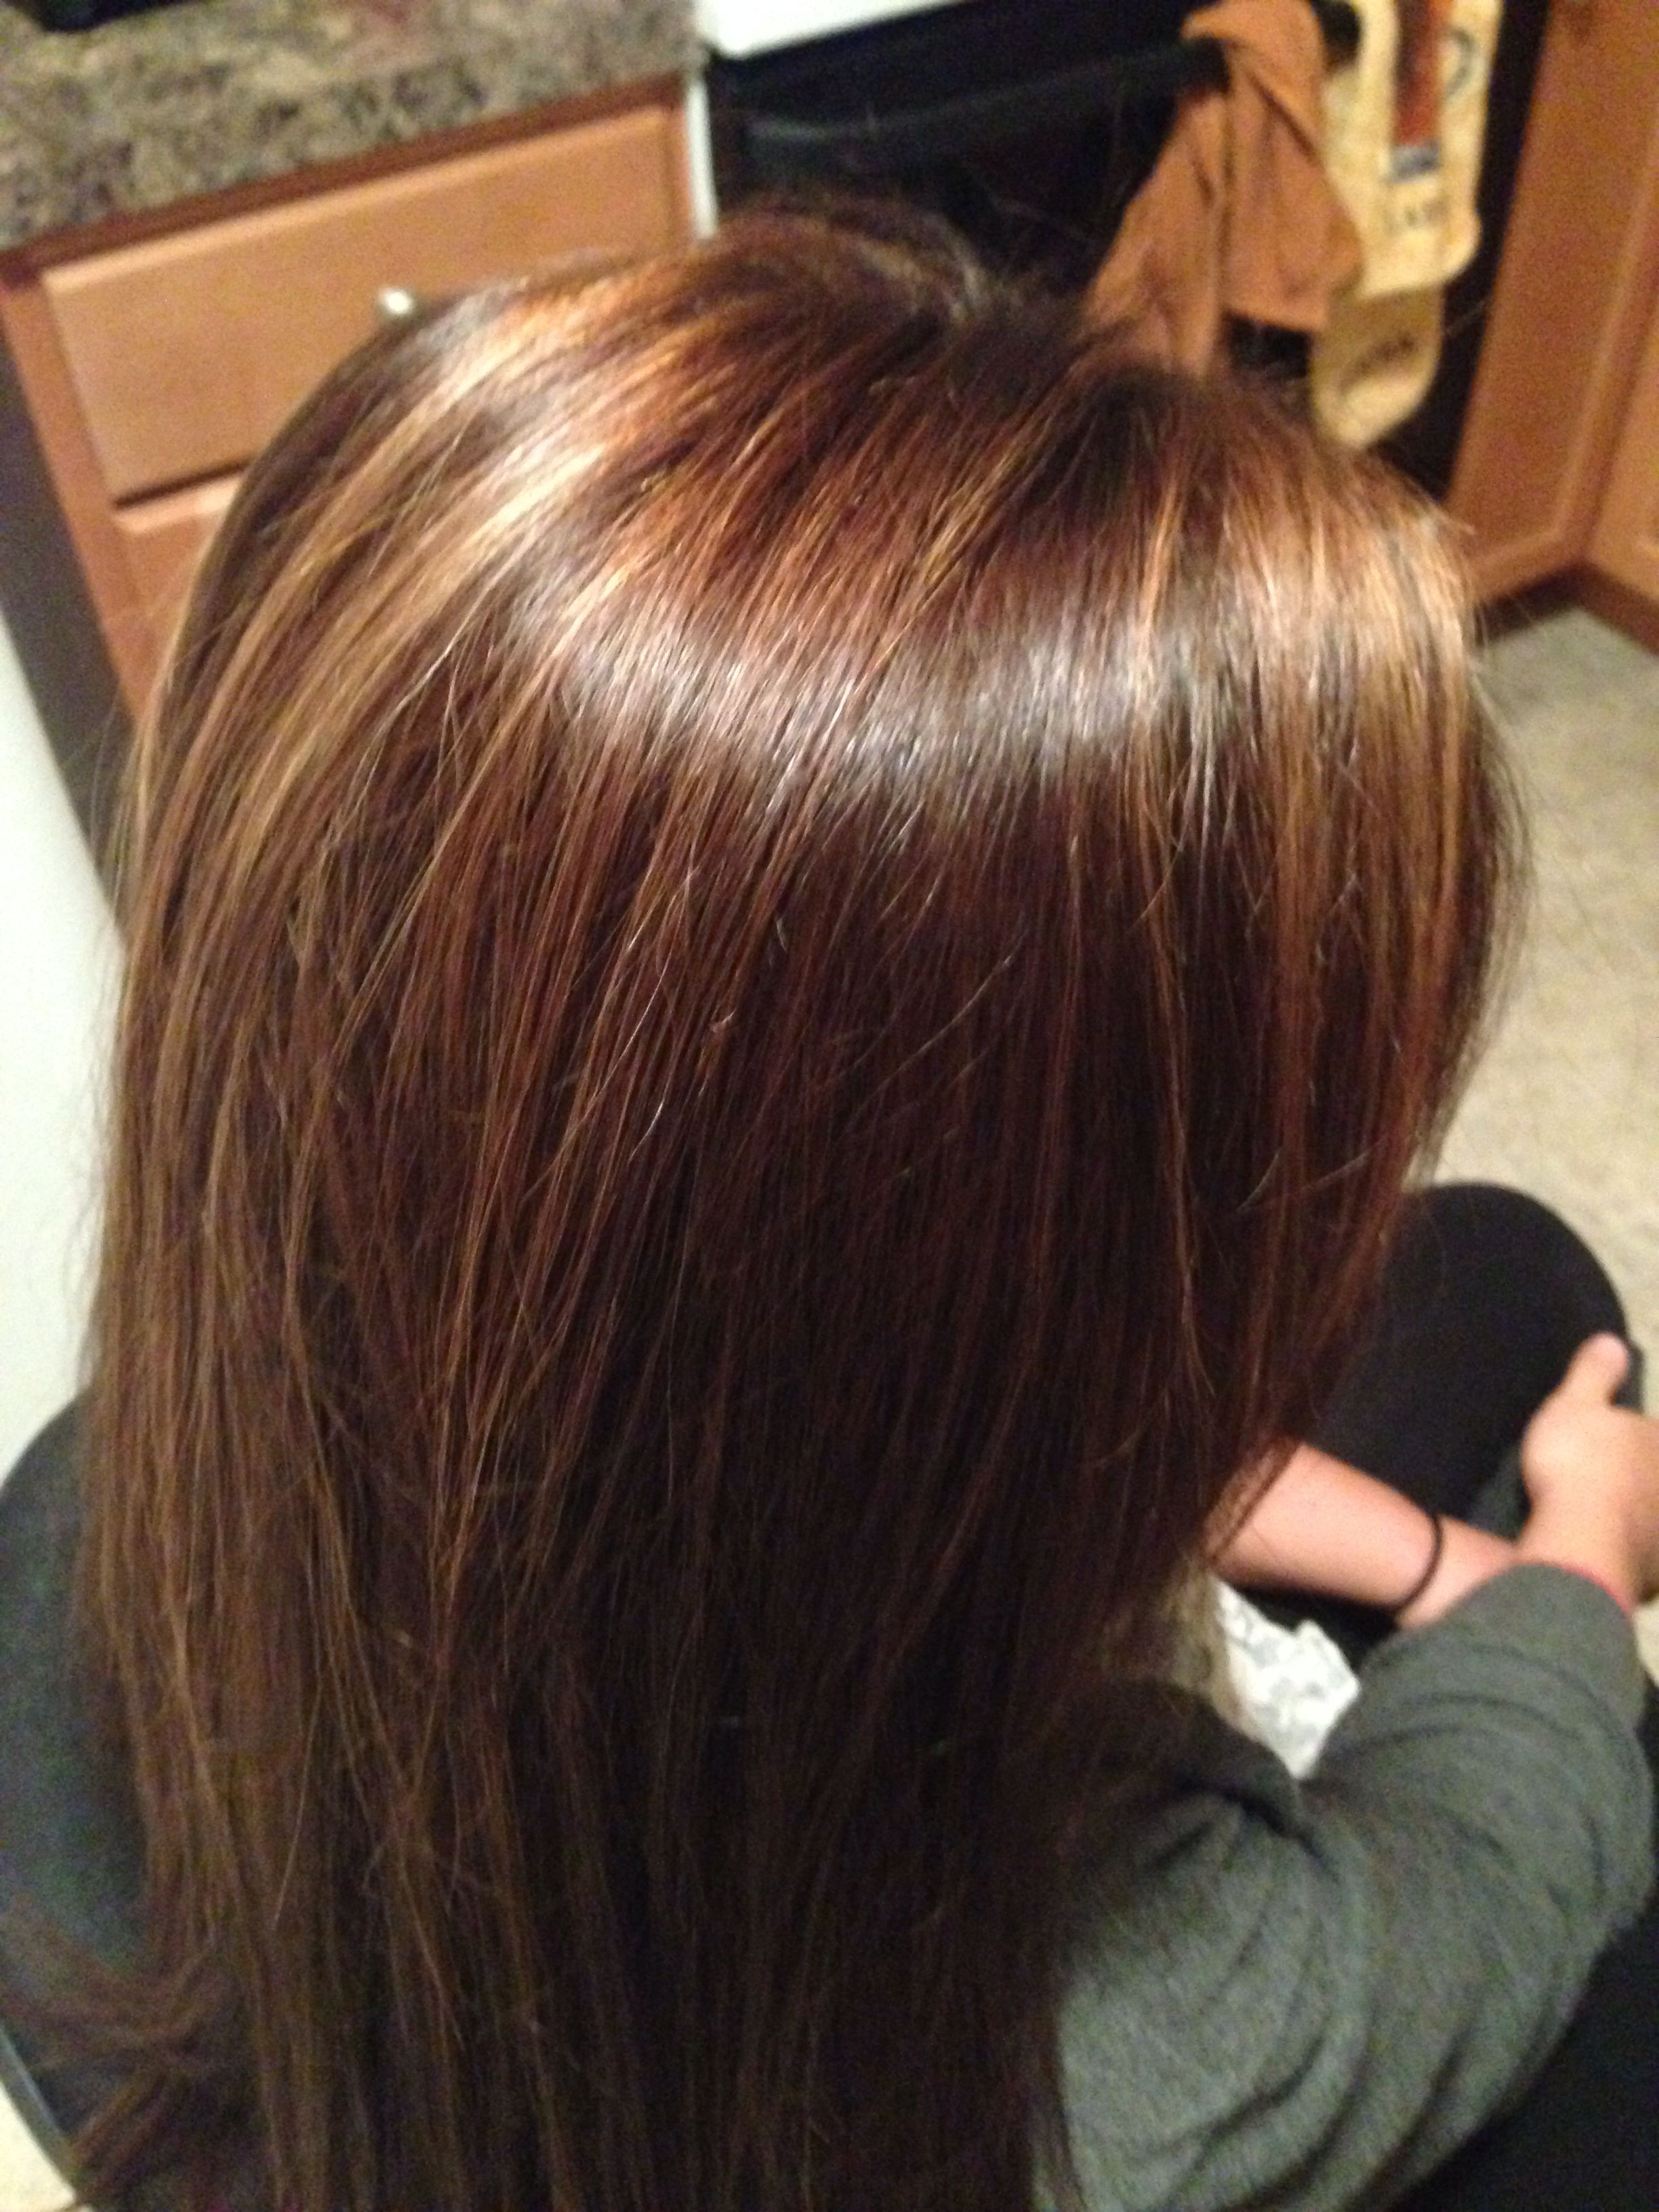 Rich Chocolate Brown With Caramel Color Highlights Not Sure That I Want More In My Hair For The Fall Winter Months